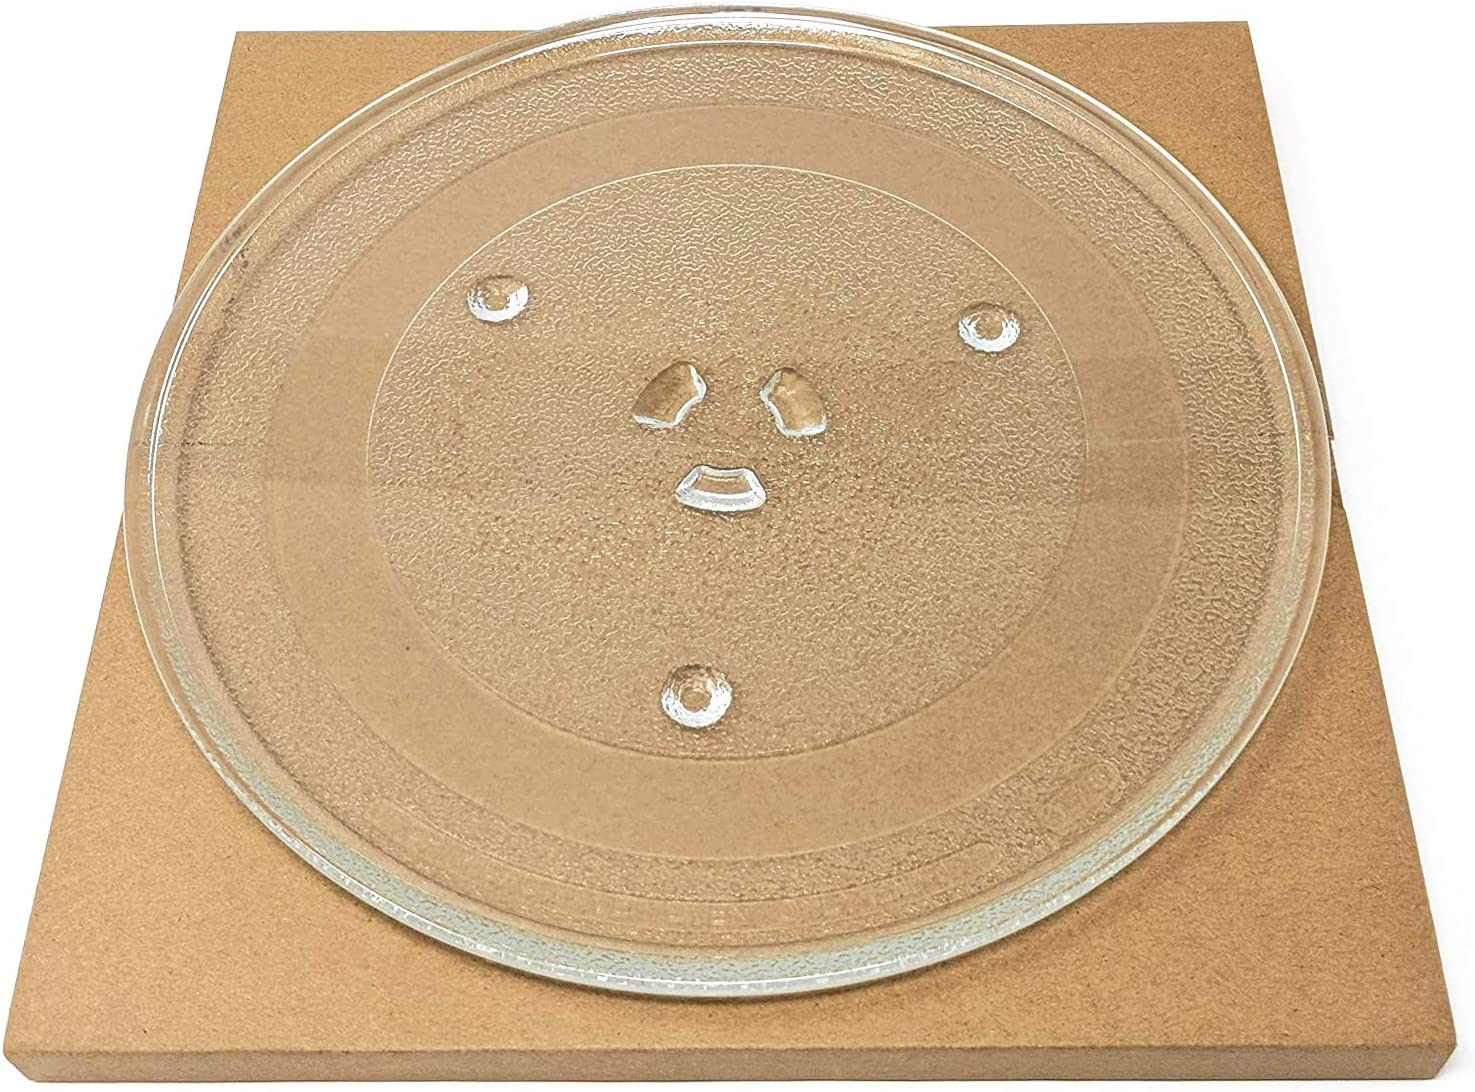 Microwave Turntable Glass Tray WB49X10097 By Primeswift Replacement for Samsung GE 947207 WB39X0078 Approx.11 1//4 inches diameter